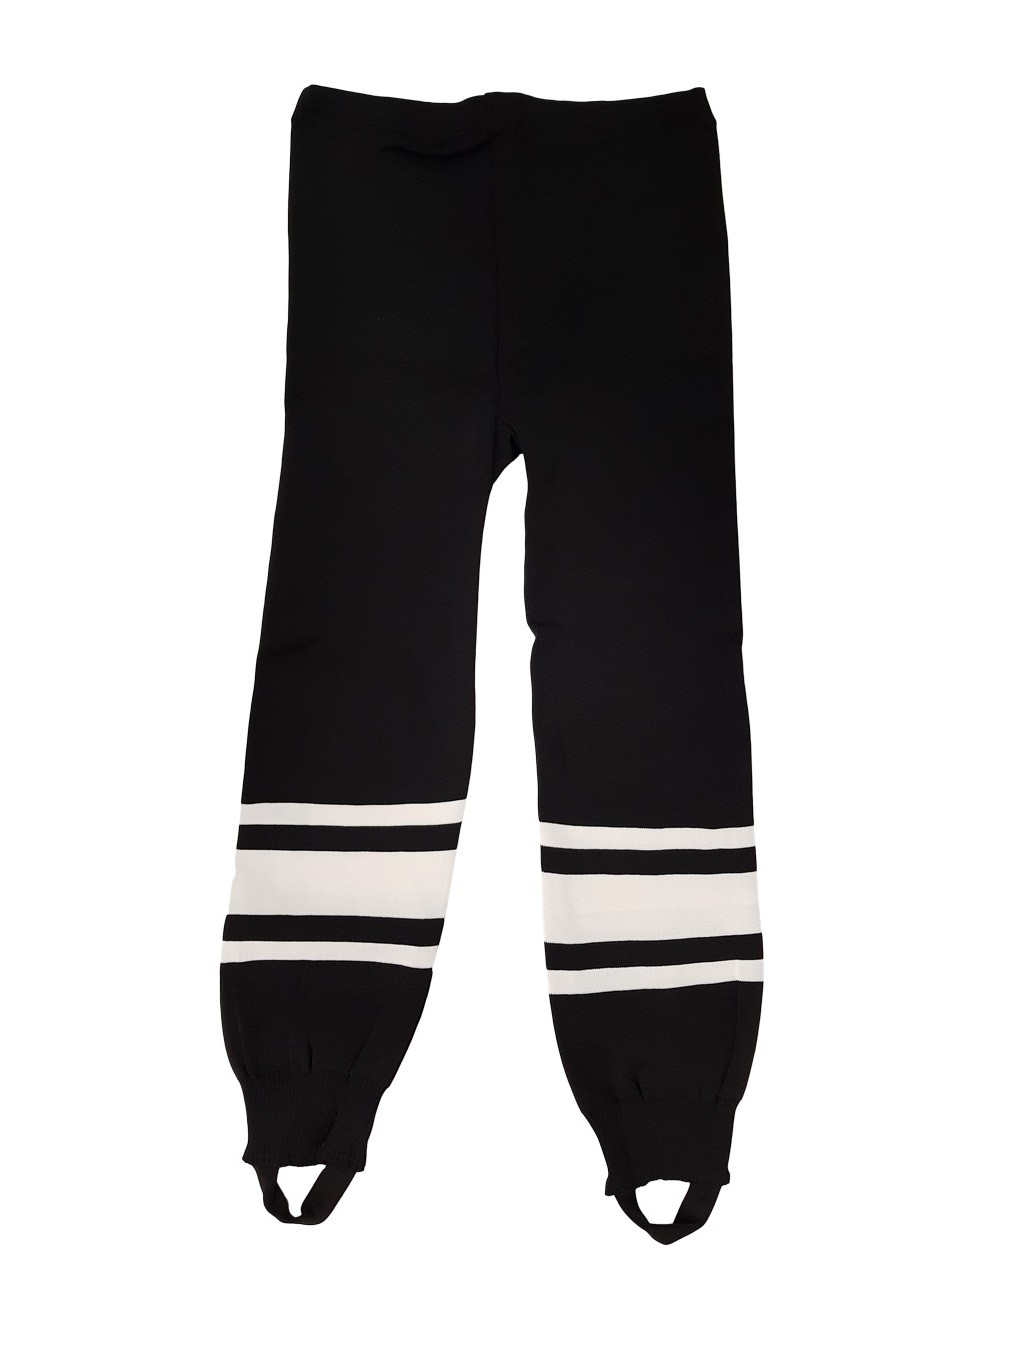 HOKEJAM.LV Knit Adult Hockey Sock Pants#001